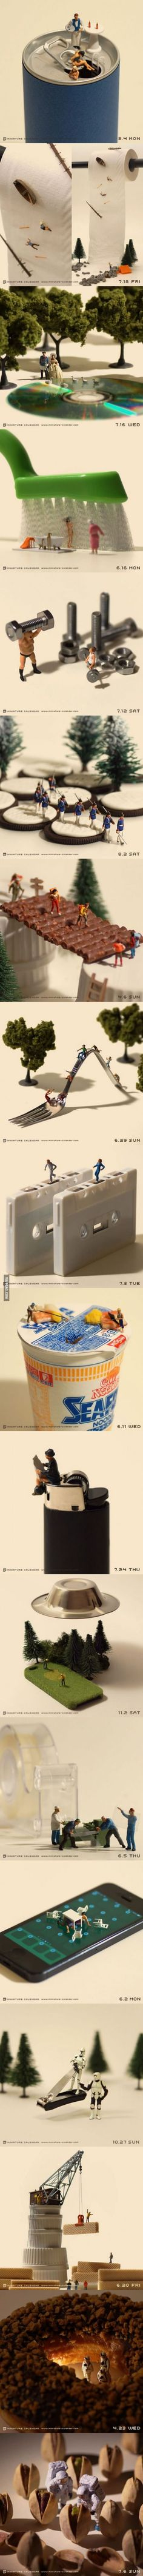 Tanaka Tatsuya combined little people and everyday objects to create an art like never seen before.